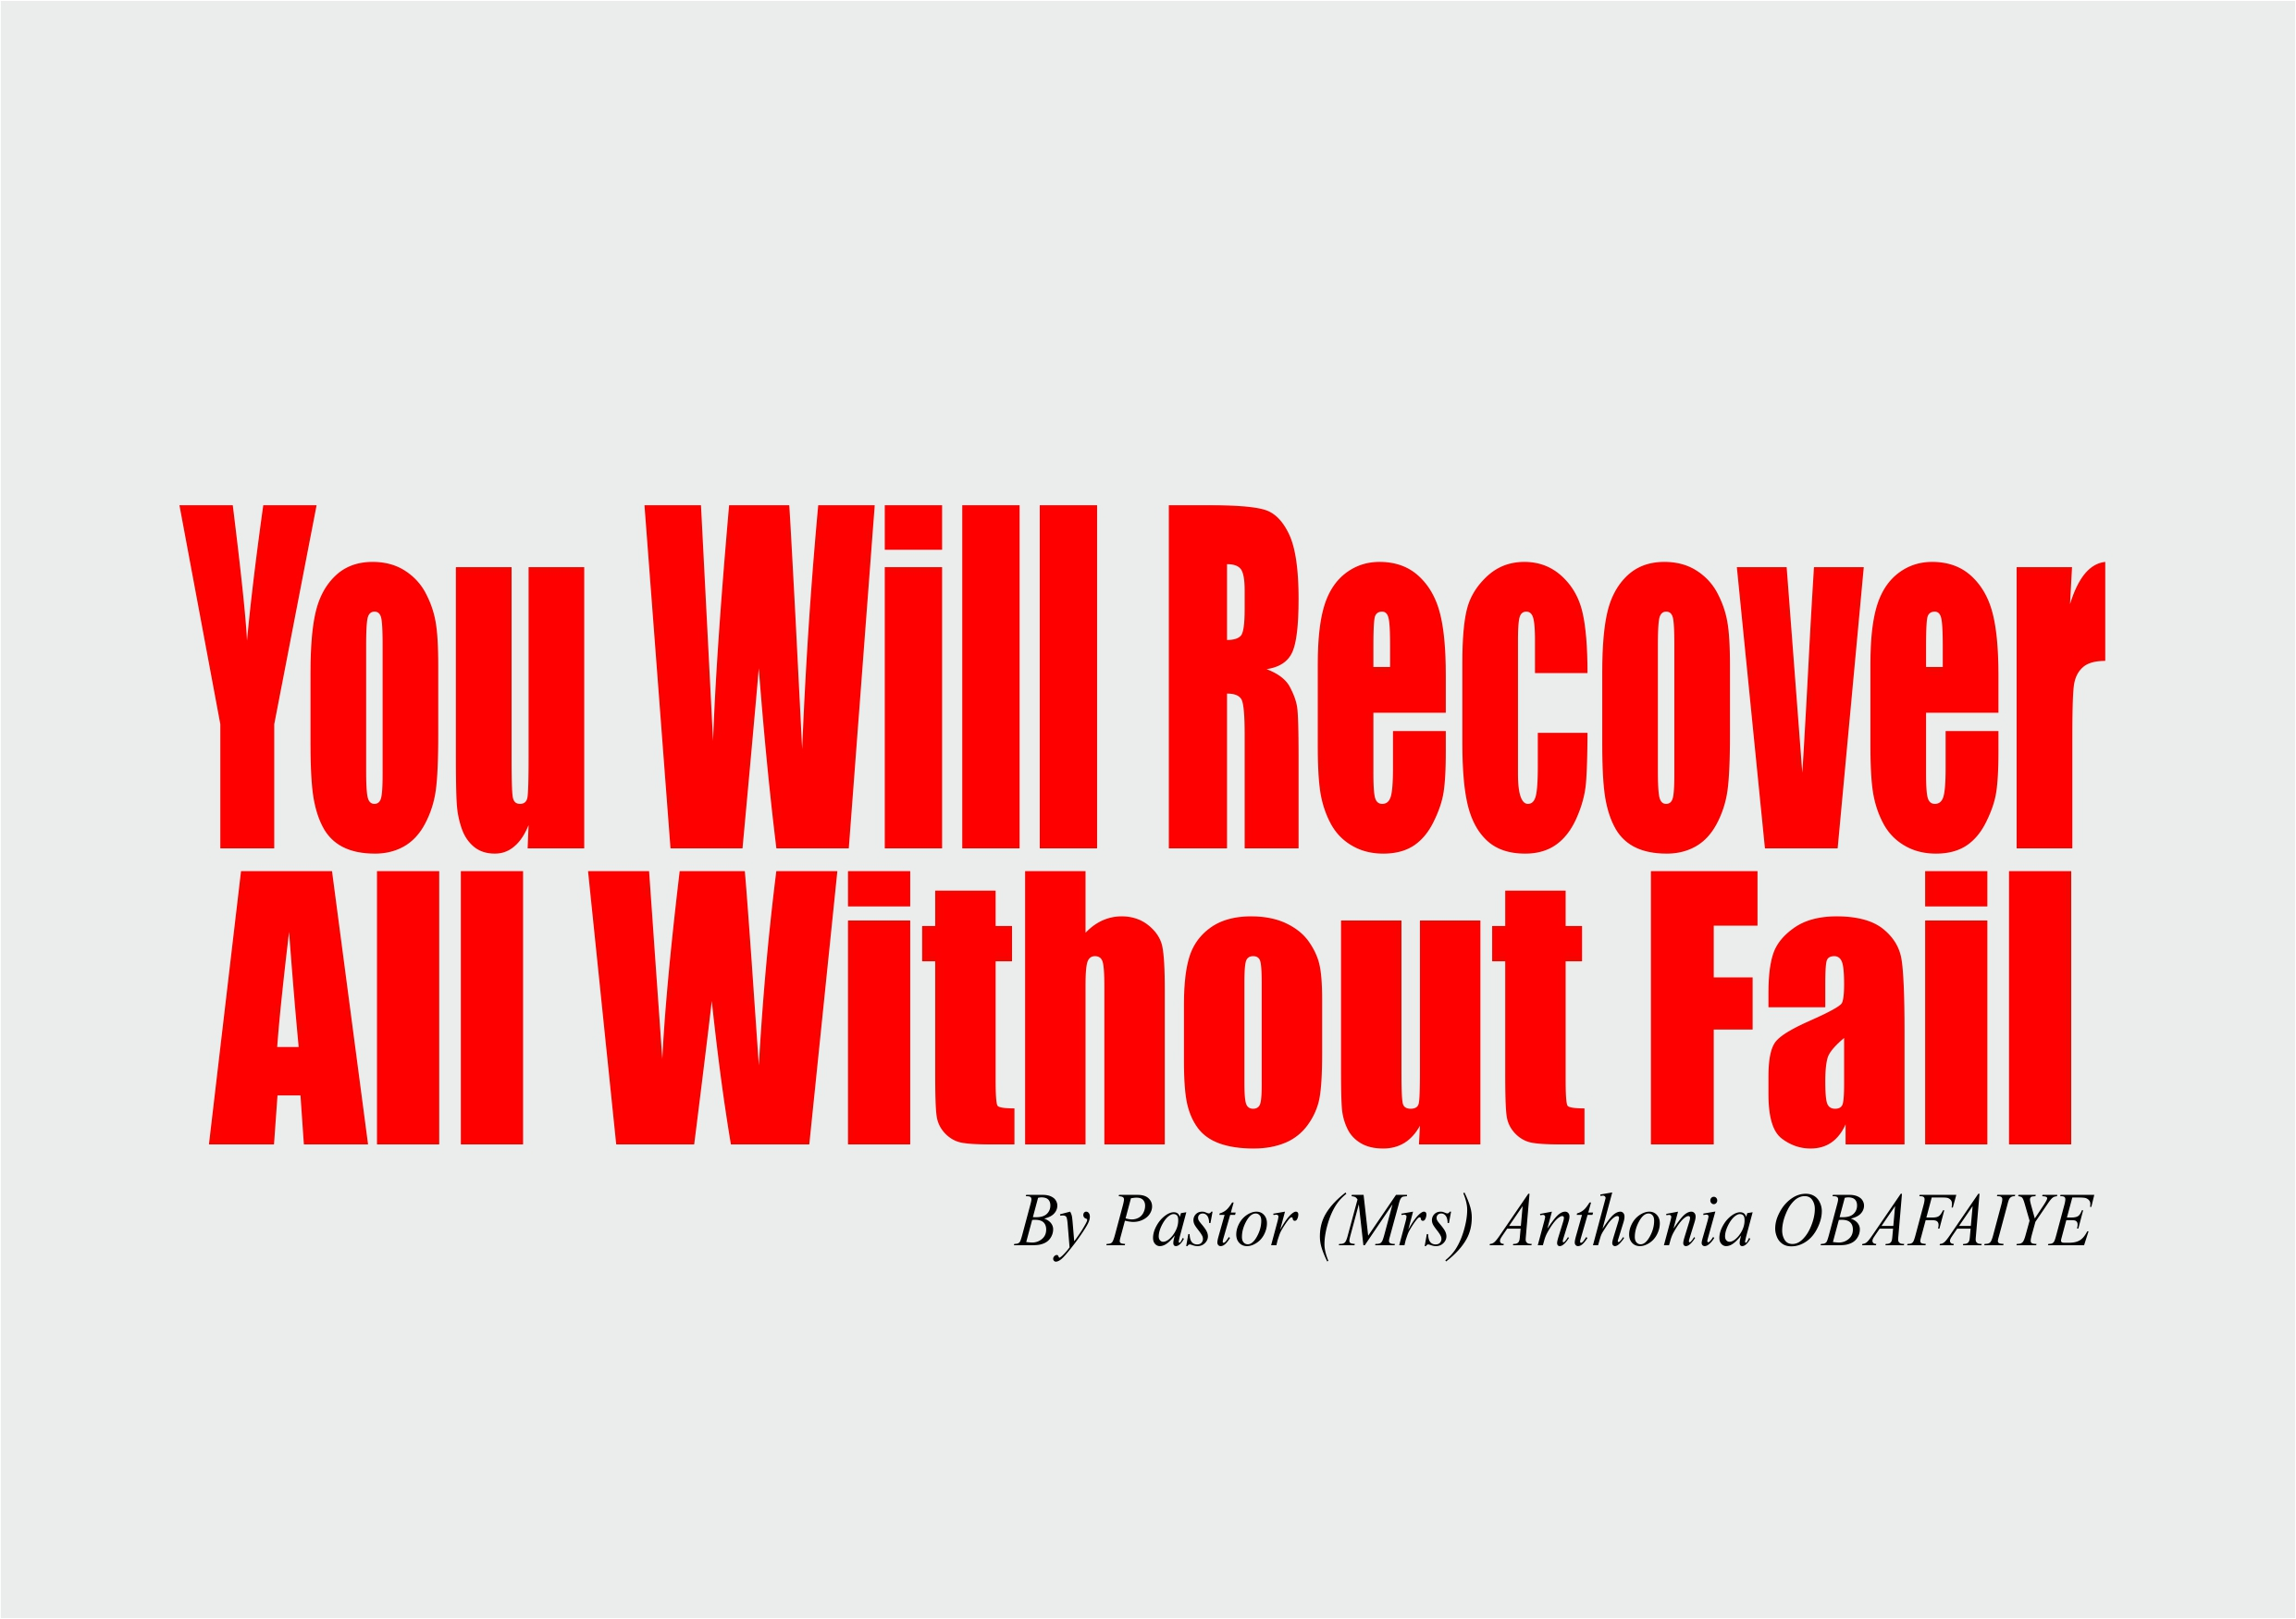 You Will Recover All Without Fail, by Pastor (Mrs) Anthonia Obafaiye